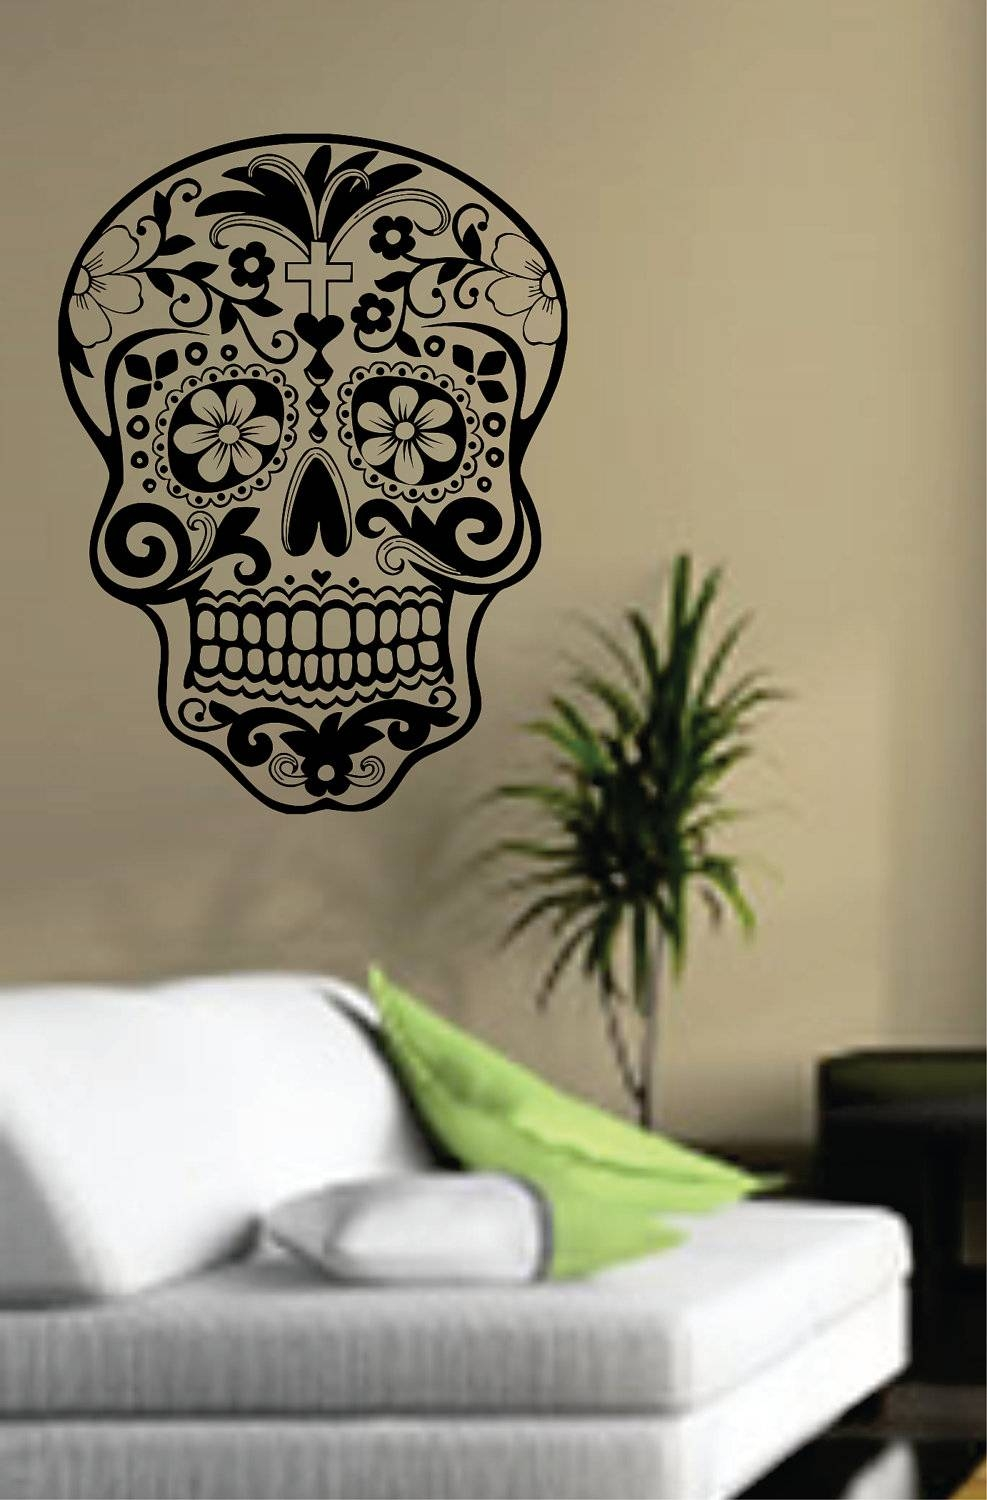 100+ [ Pinterest U2022 The World U0027s ] | Wall Pattern Ideas In Most Up To Date Tim Burton Wall Decals (View 9 of 20)